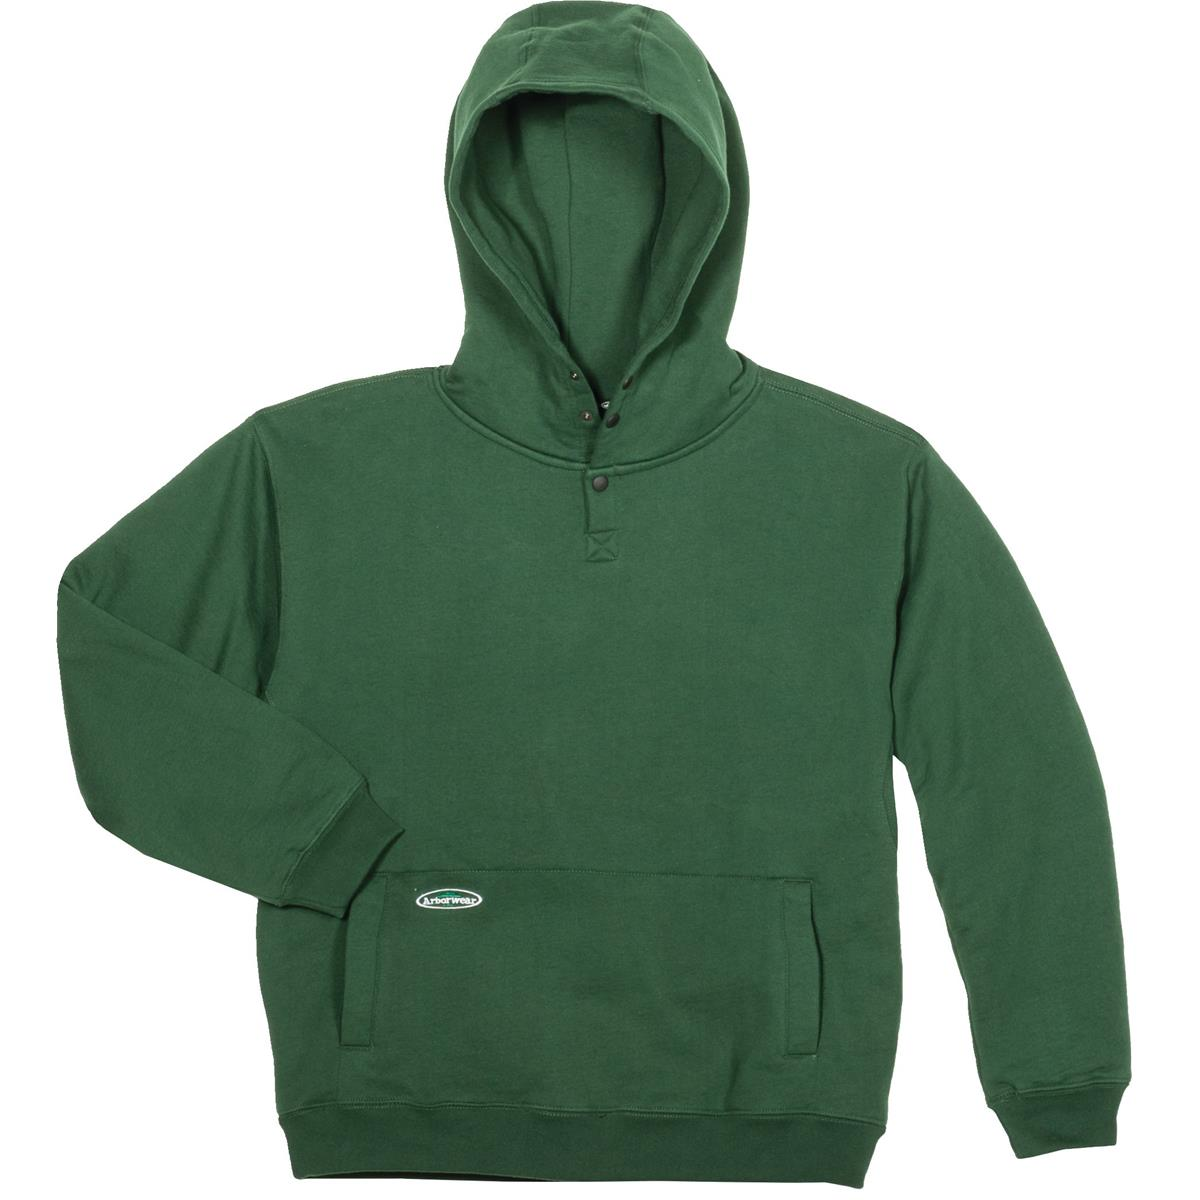 Arborwear Double-Thick Hooded Pullover Sweatshirt